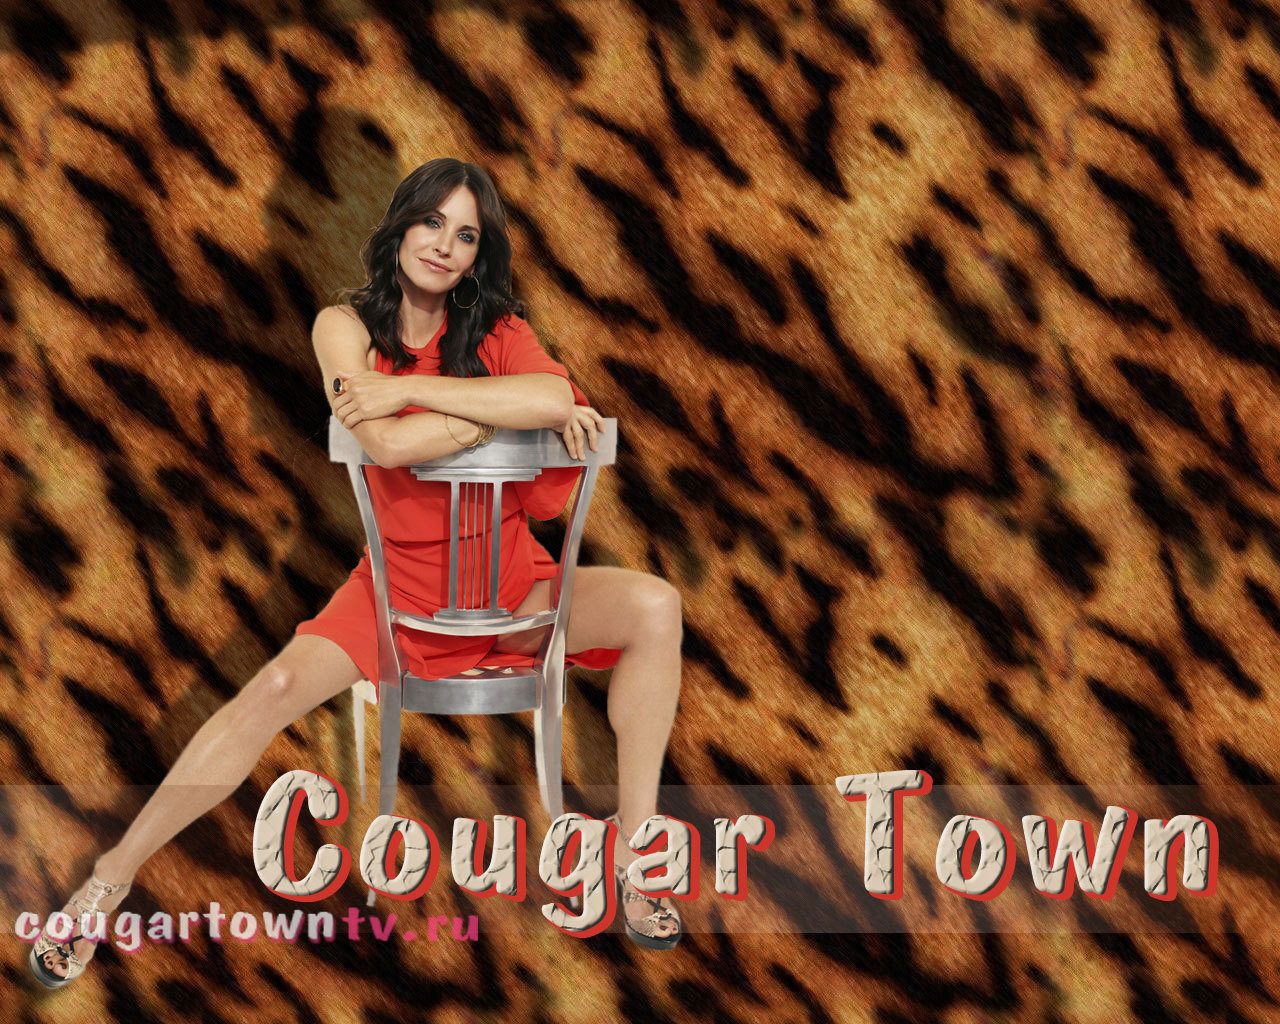 Cougar Town Wallpaper Cougar Town Wallpaper 1